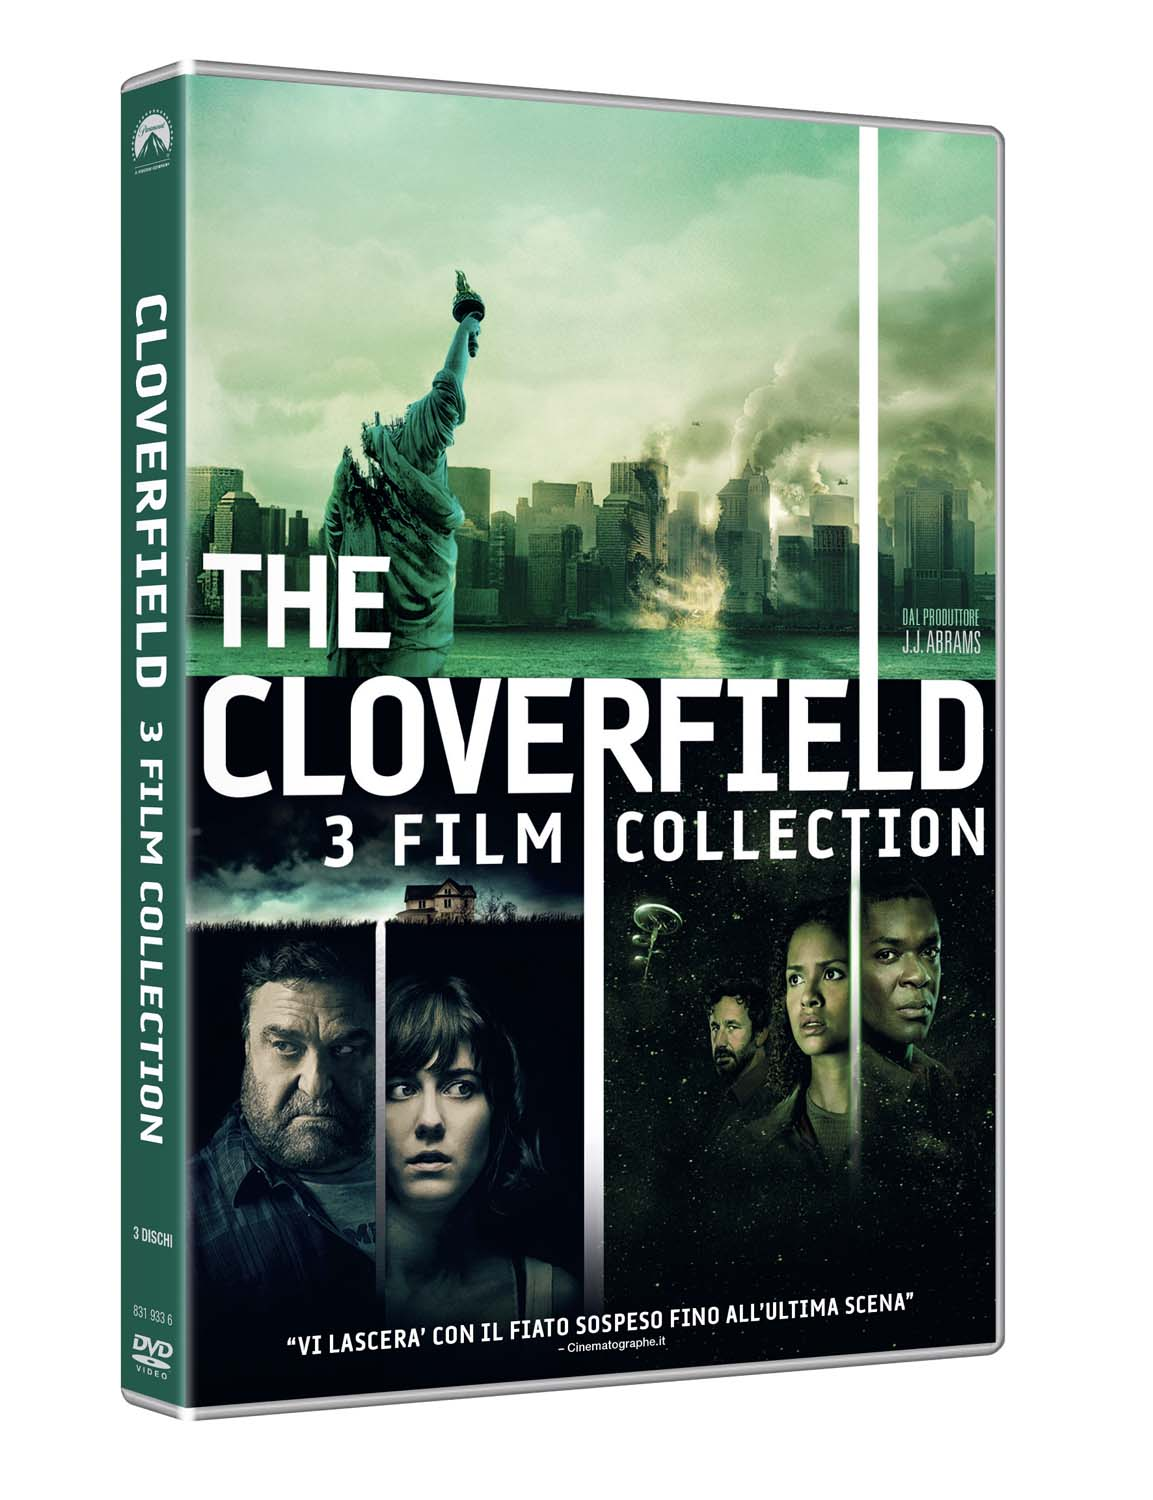 Cloverfield collection: Cloverfield (2008) - 10 Cloverfield Lane (2016) - The Cloverfield paradox (2018)